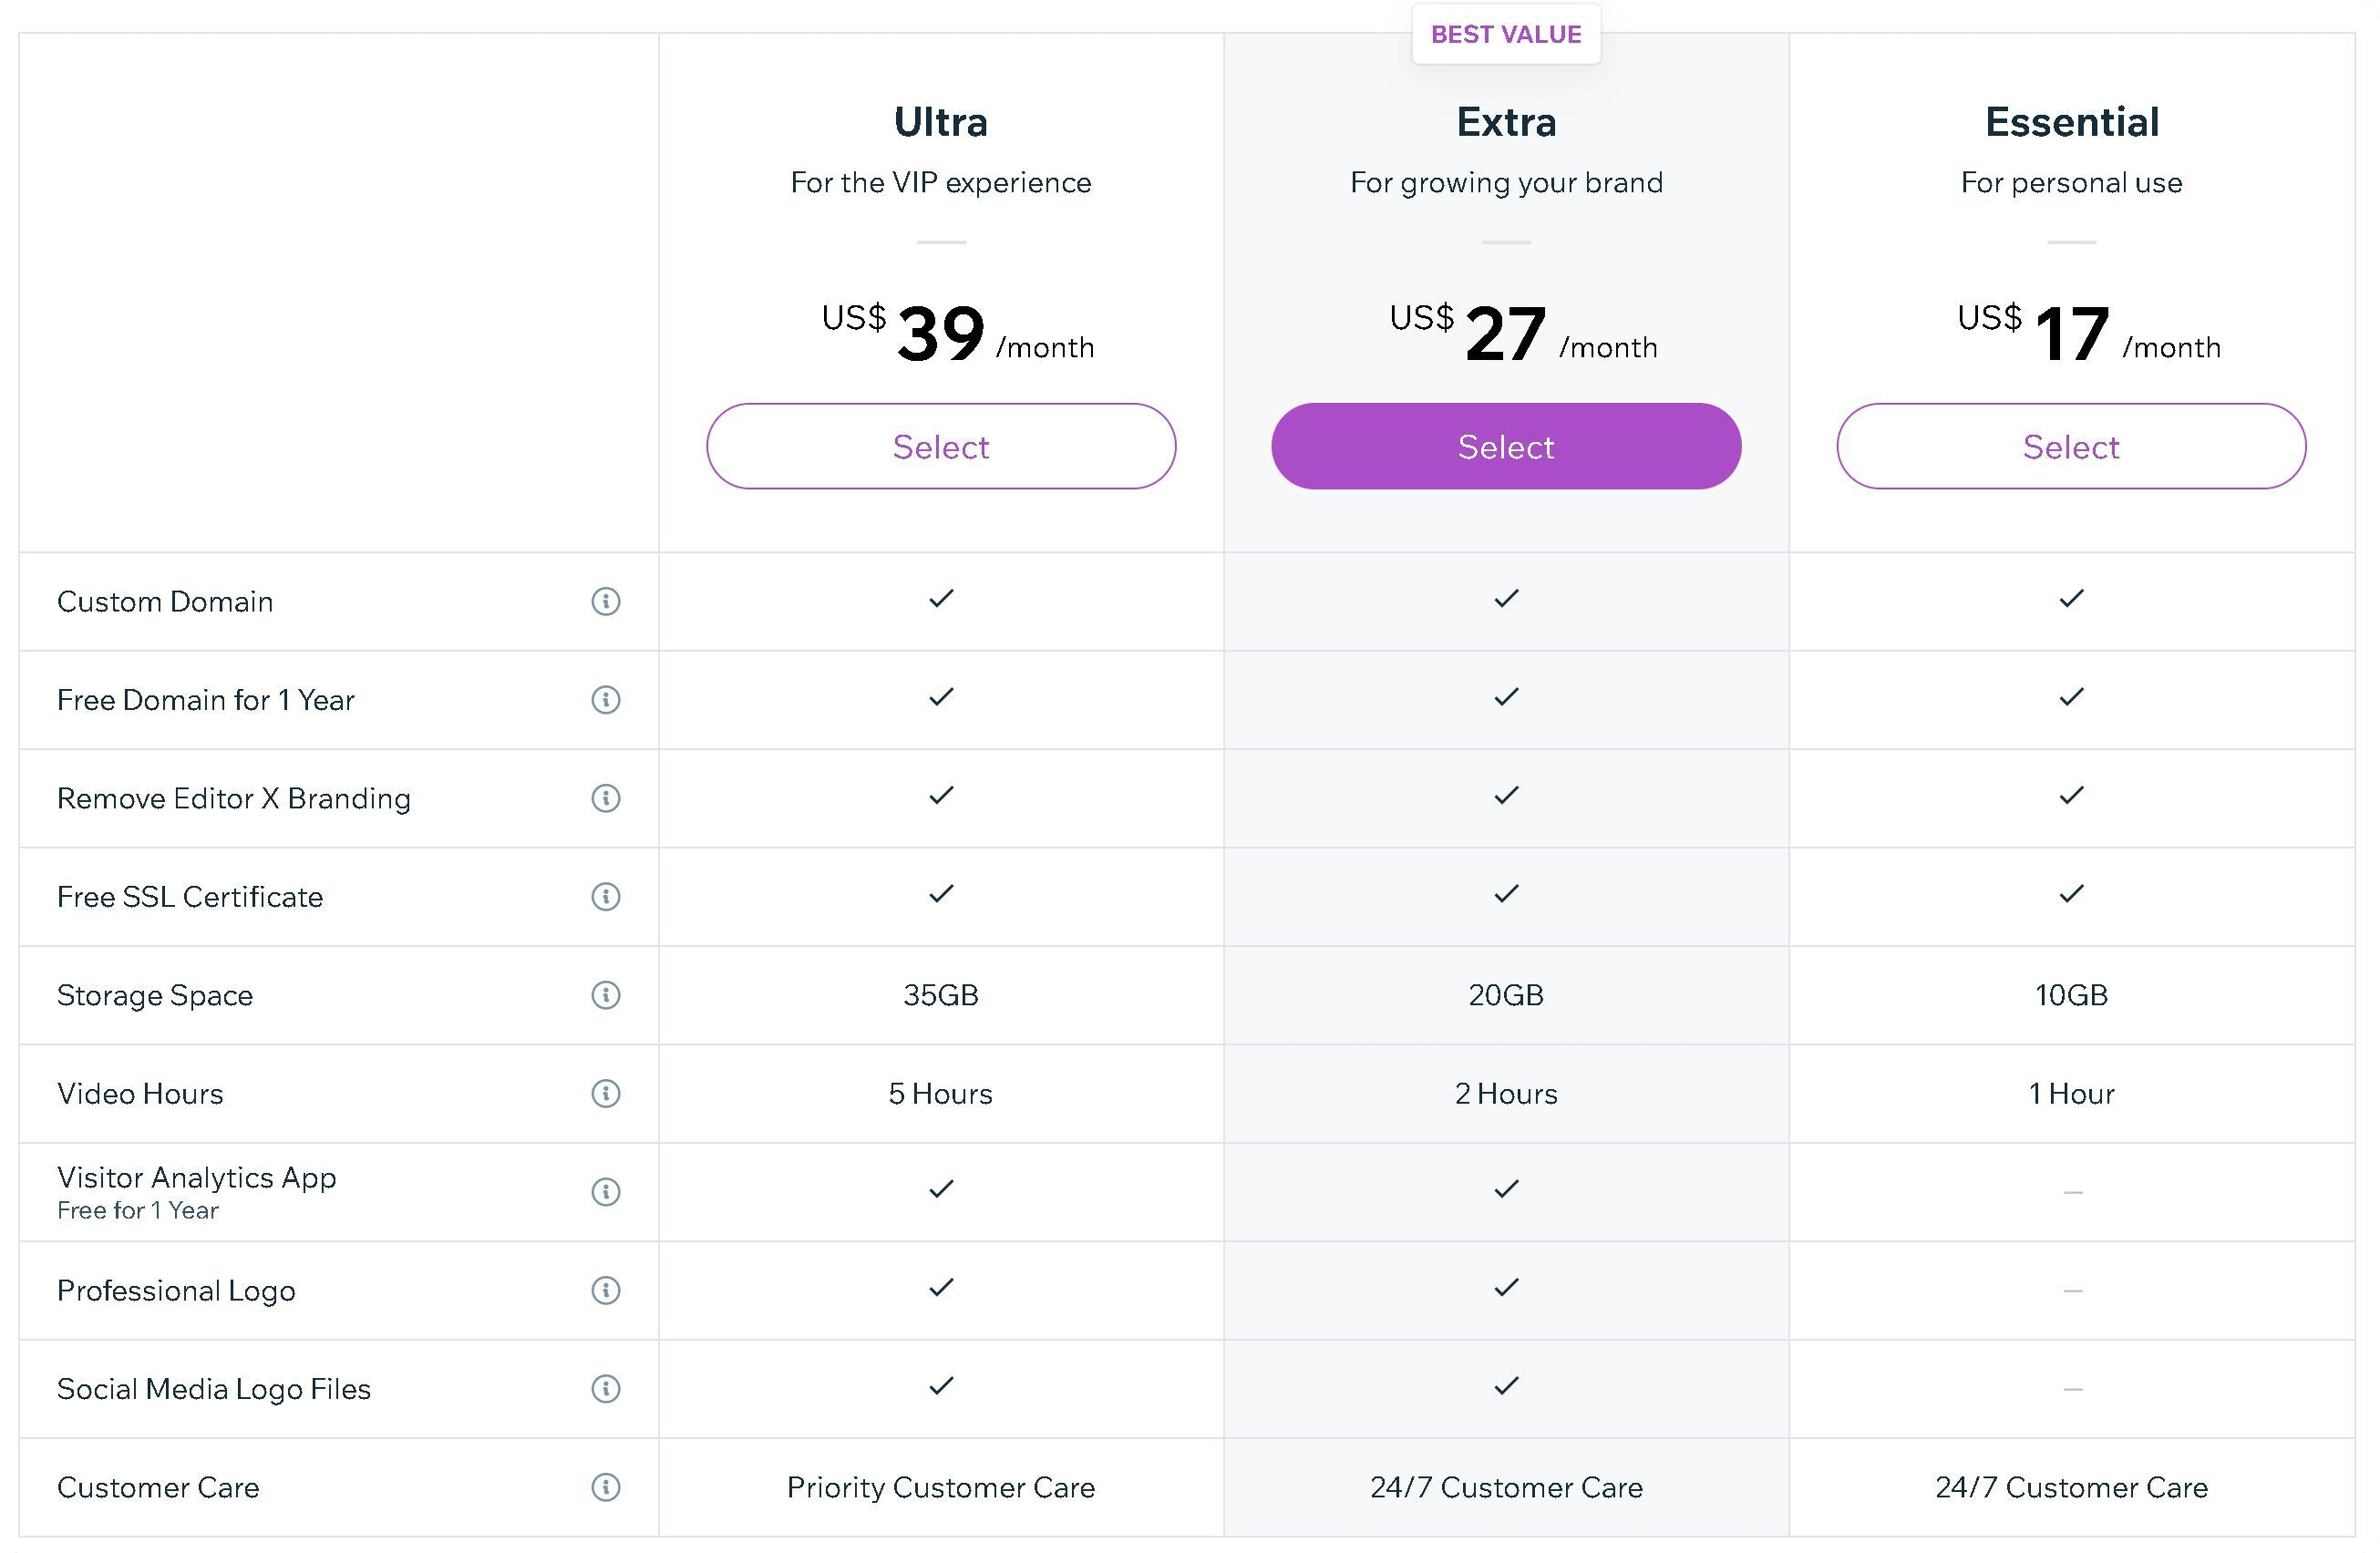 Pricing-in-Editor-X-more-expensive-than-Webflow-here-why-?